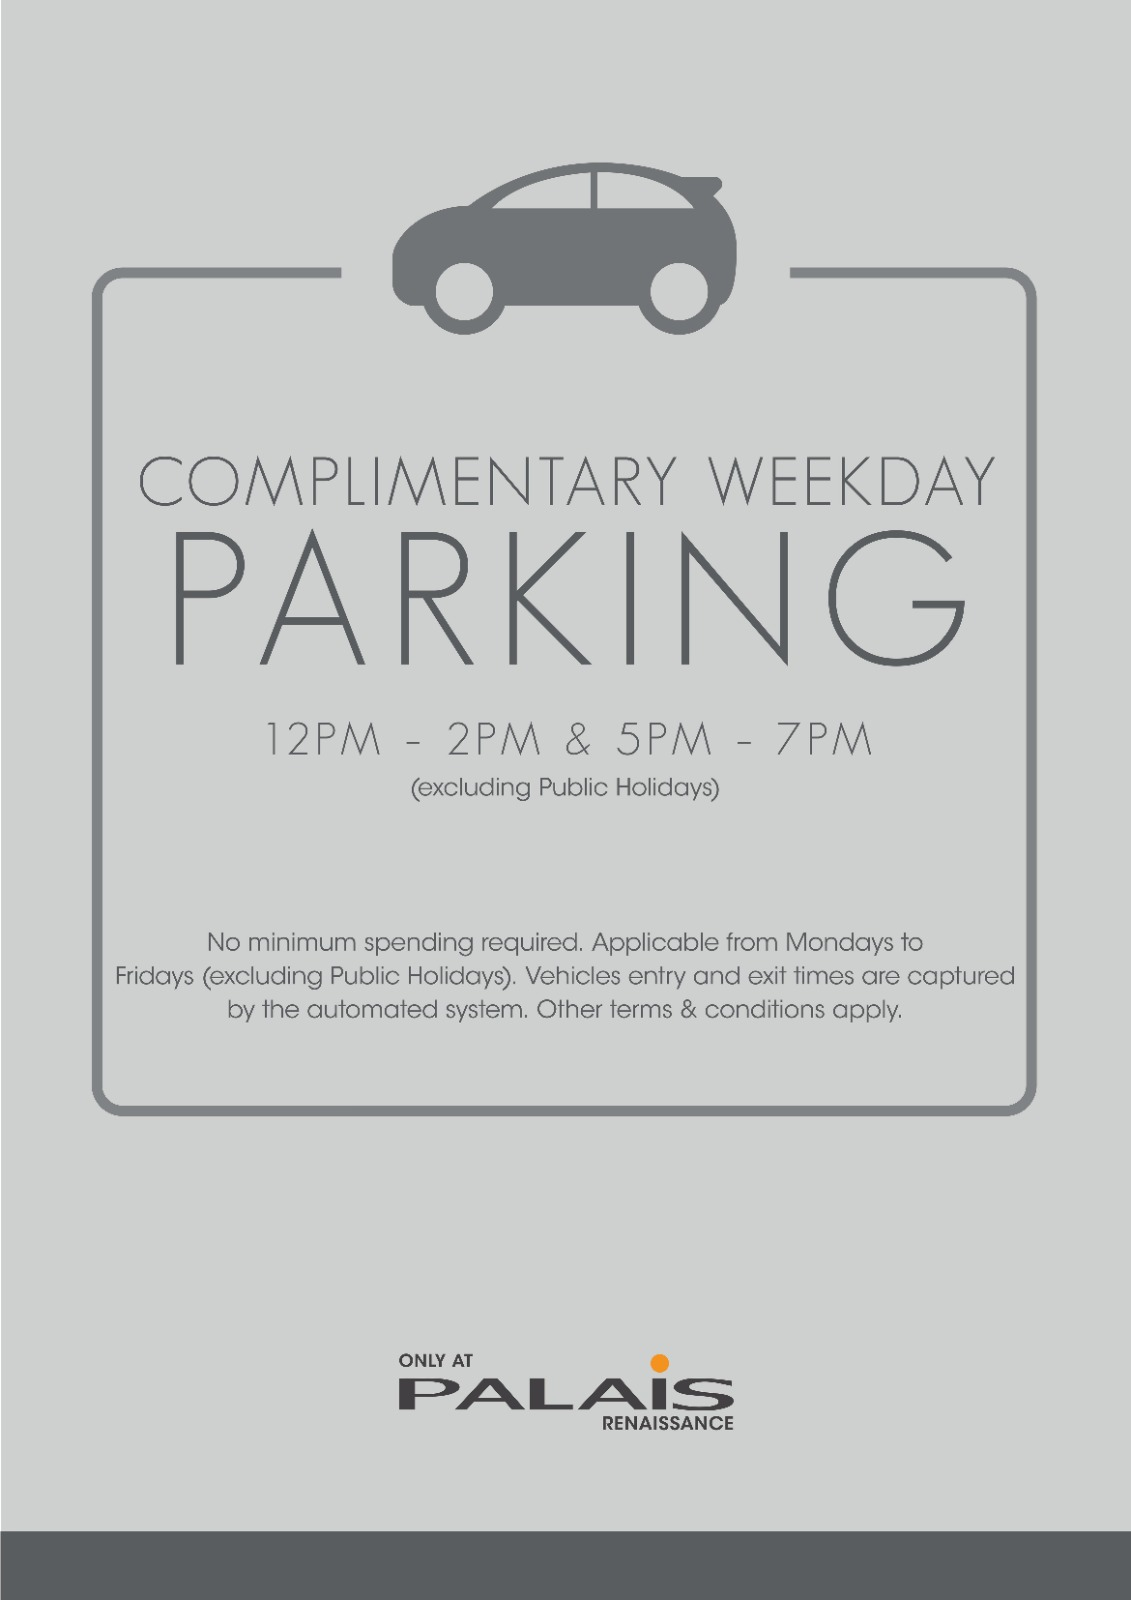 Complimentary Weekday Parking with No Minimum Spend Required